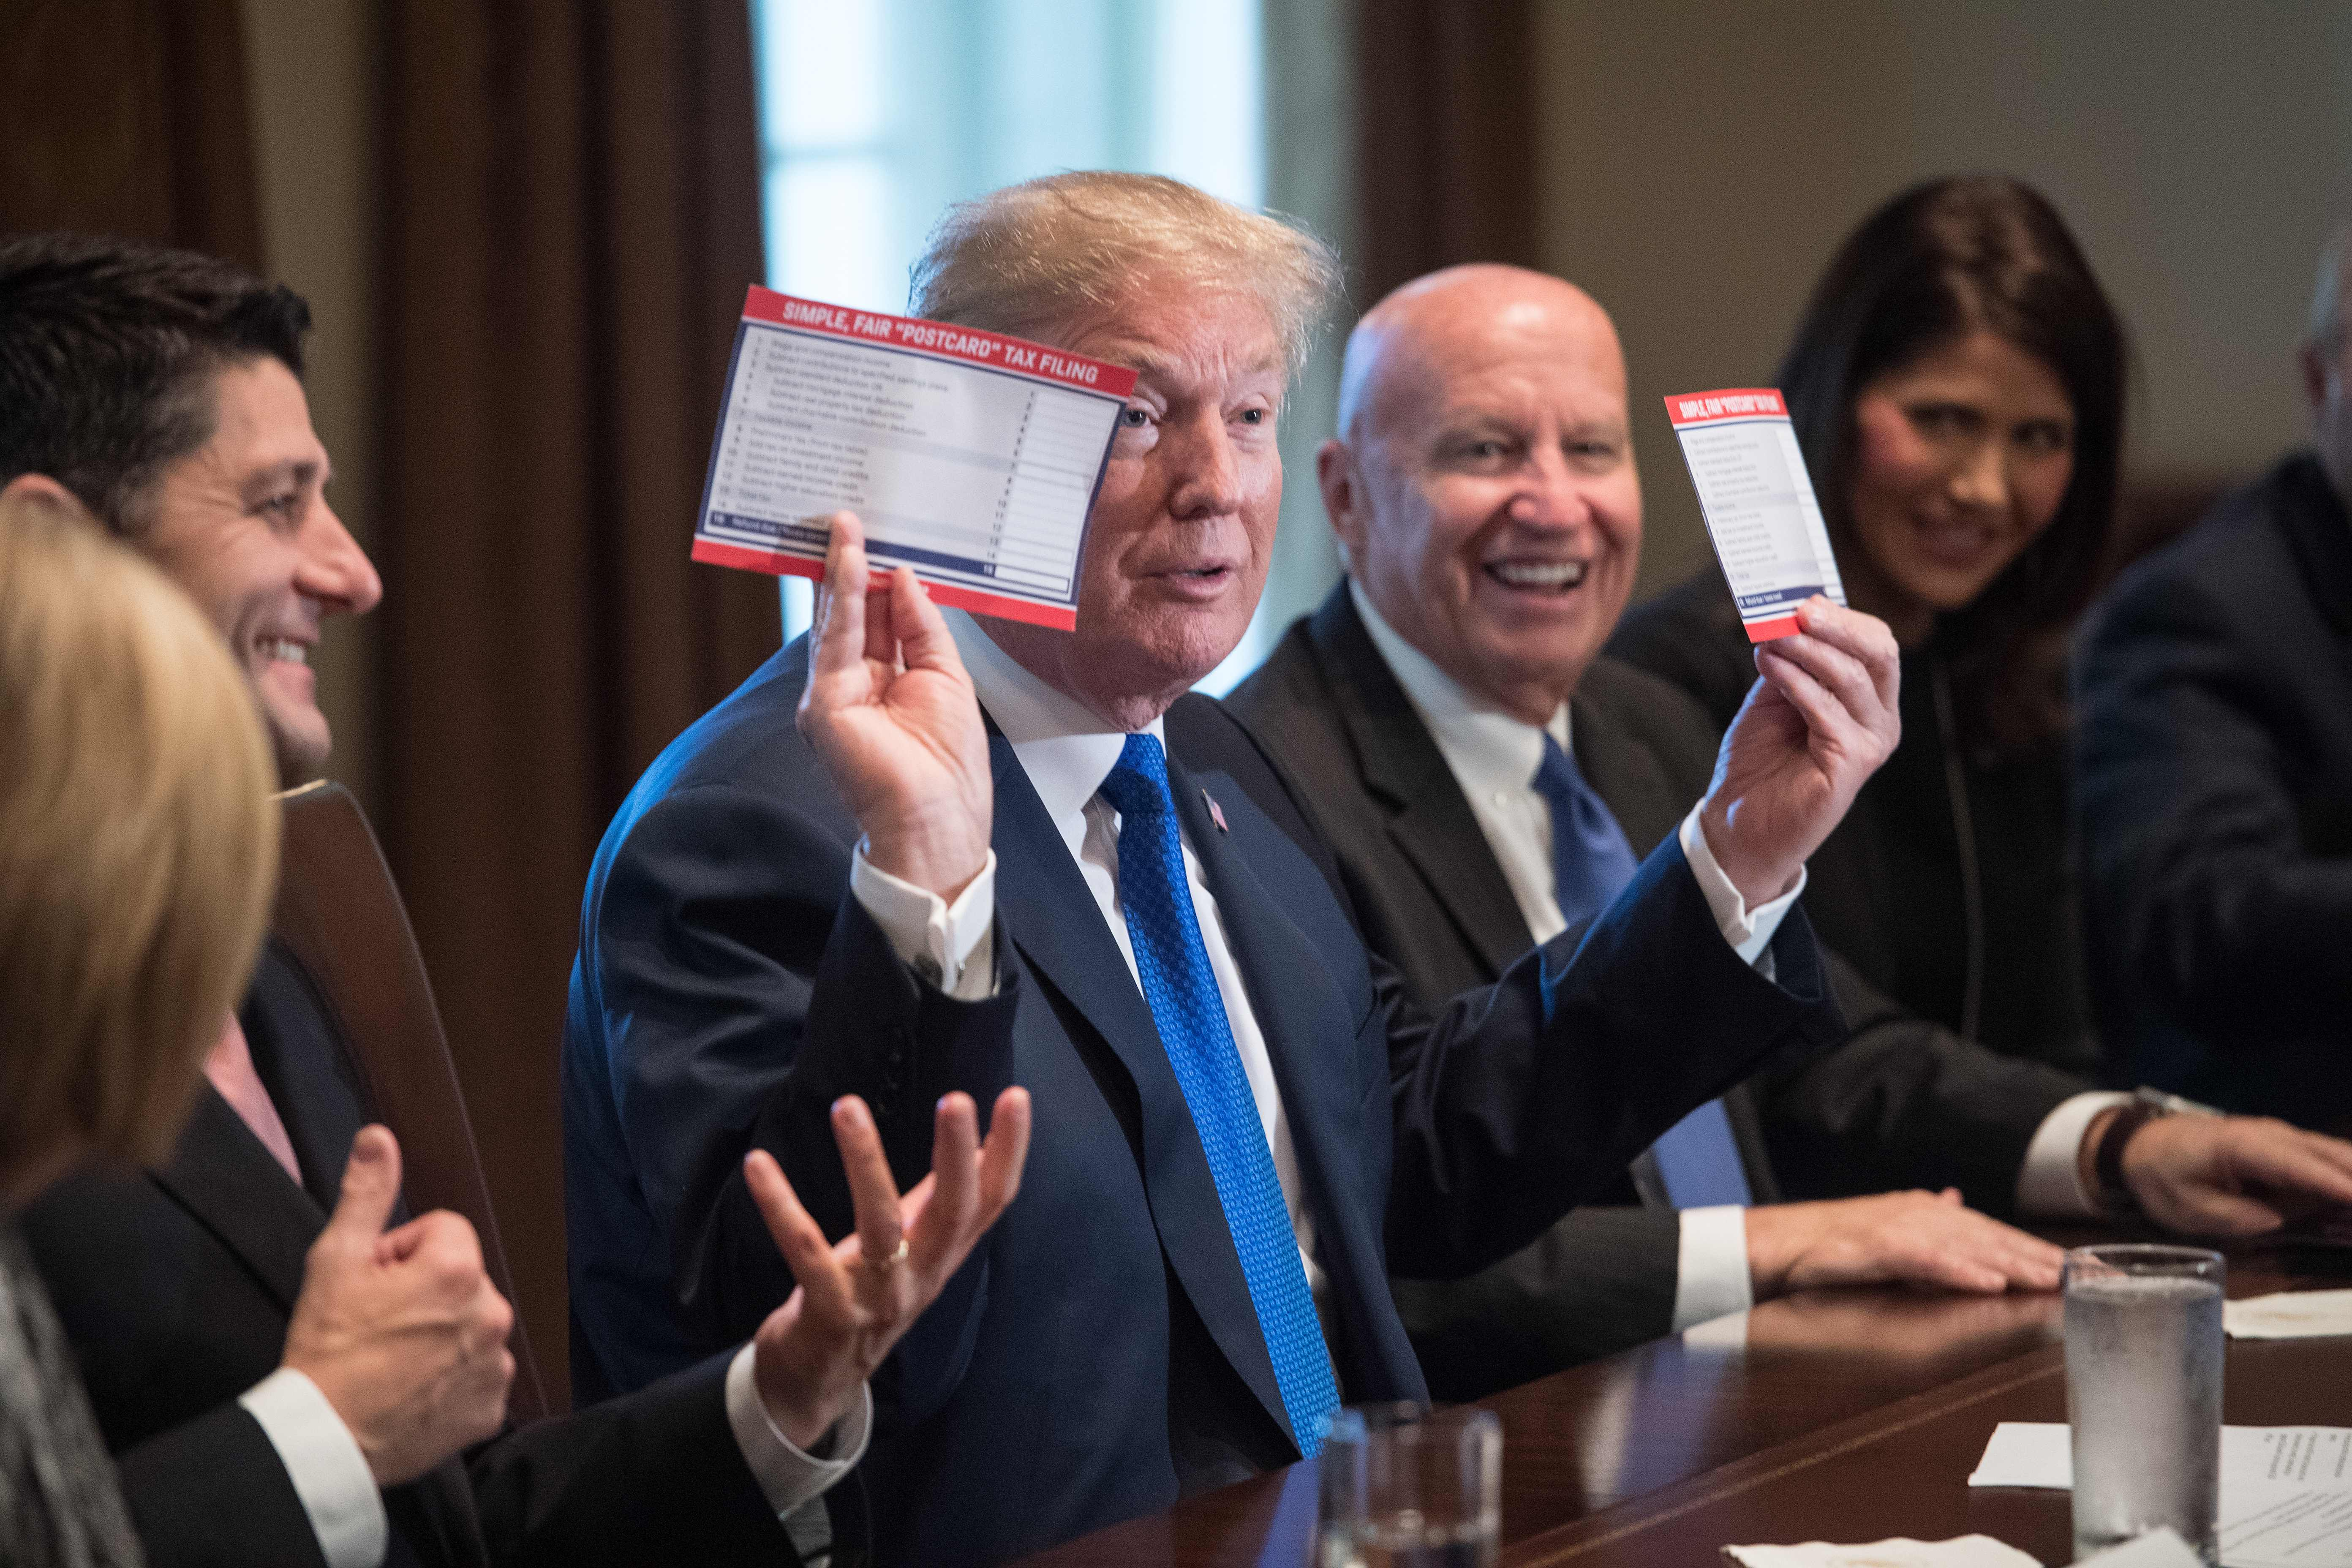 US President Donald Trump shows samples of the proposed new tax form as he meets with House Republican leaders and Republican members of the House Ways and Means Committee at the White House in Washington, DC, on November 2, 2017. / AFP PHOTO / NICHOLAS KAMM (Photo credit should read NICHOLAS KAMM/AFP/Getty Images)